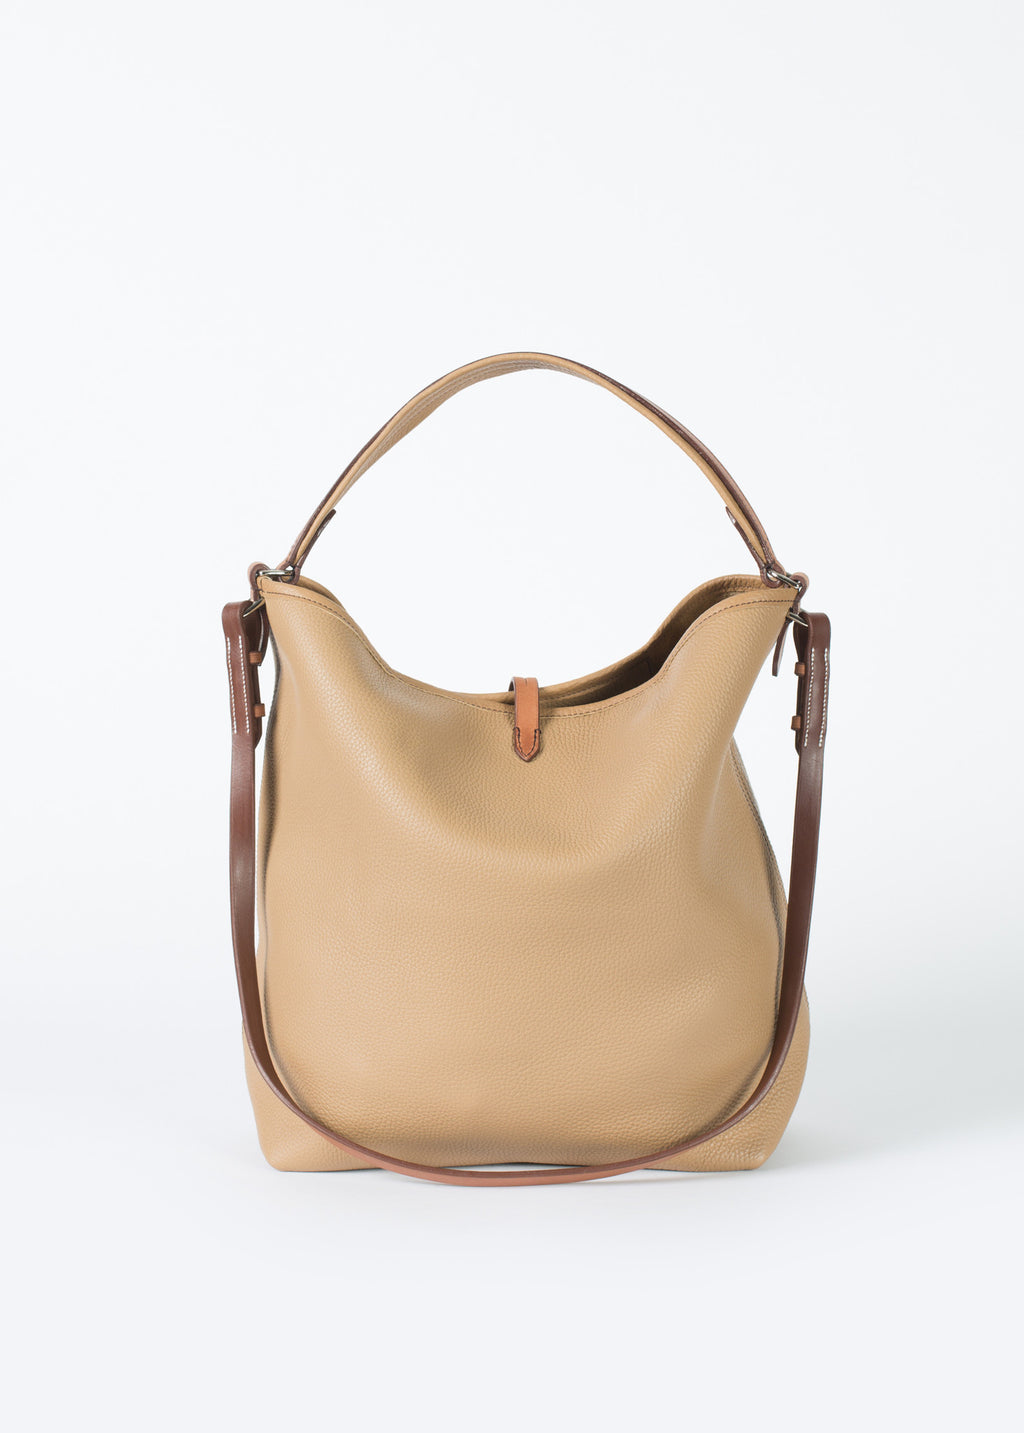 769d6219e9 Pretty Grooming Bag in Camel Tan Leather by Guibert Handbags – Baby ...